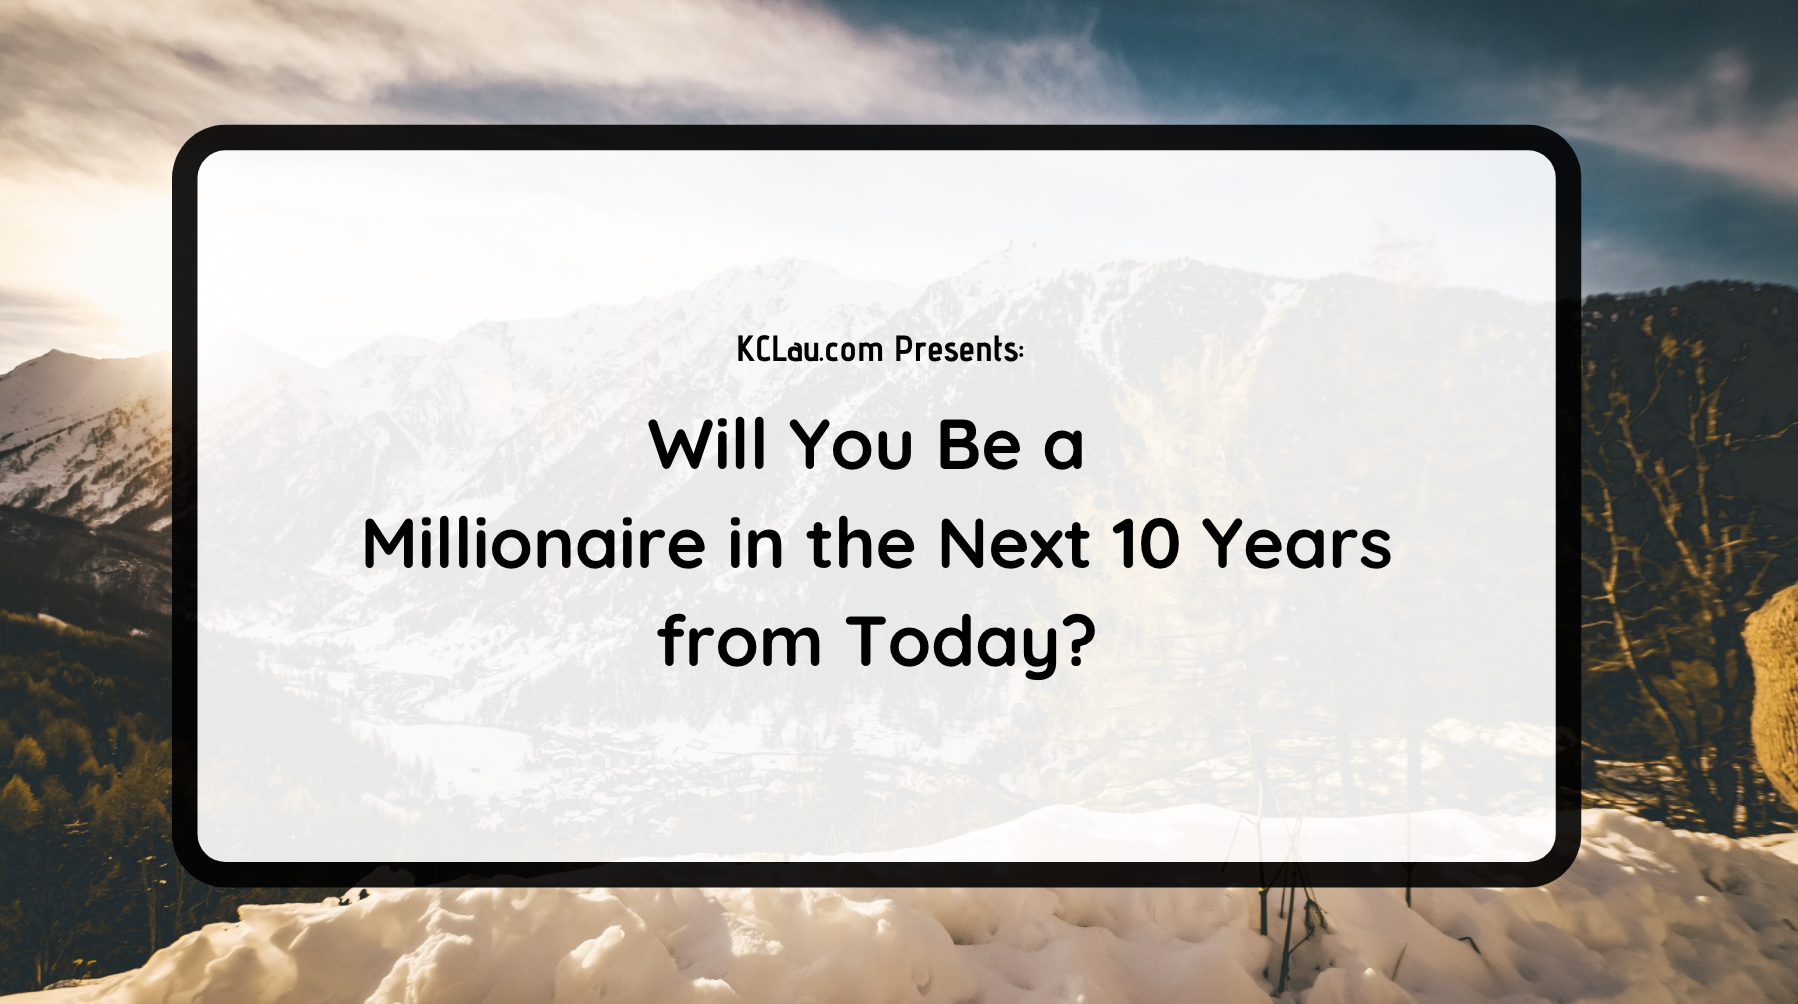 Will You Be a Millionaire in the Next 10 Years from Today